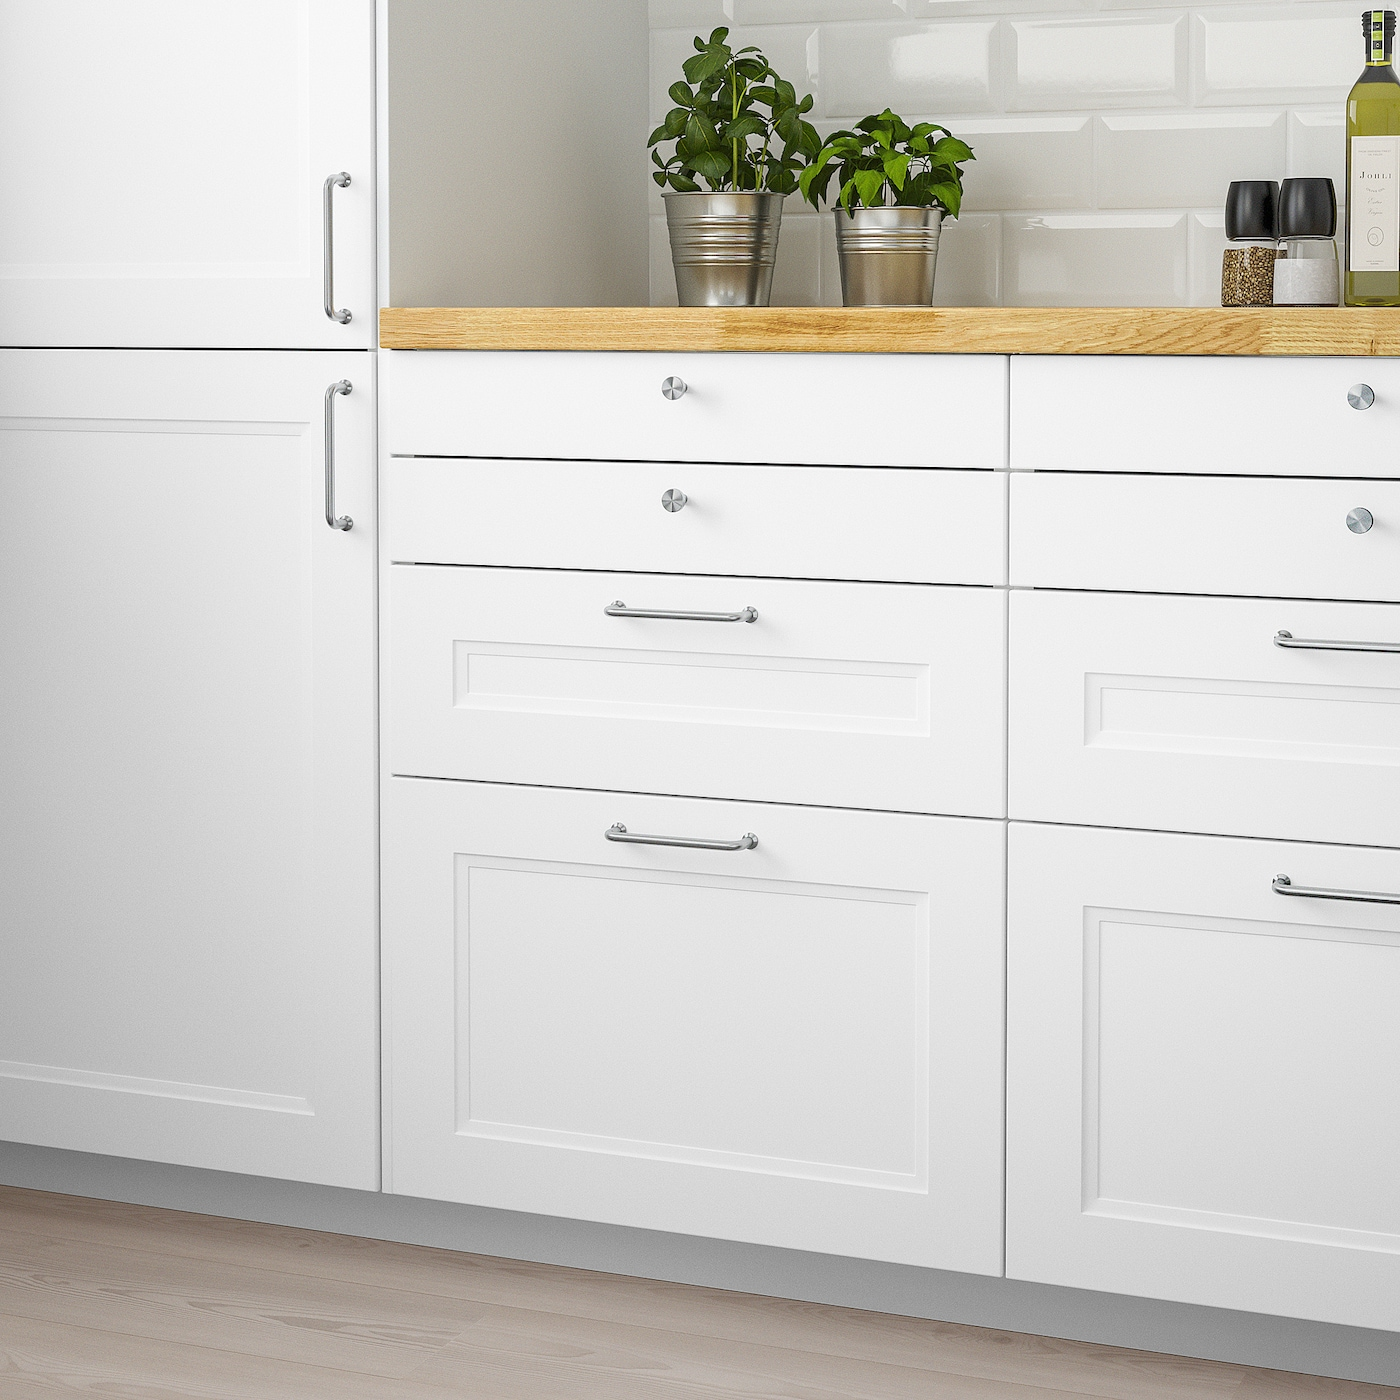 Drawer front, 60x10 cm IKEA